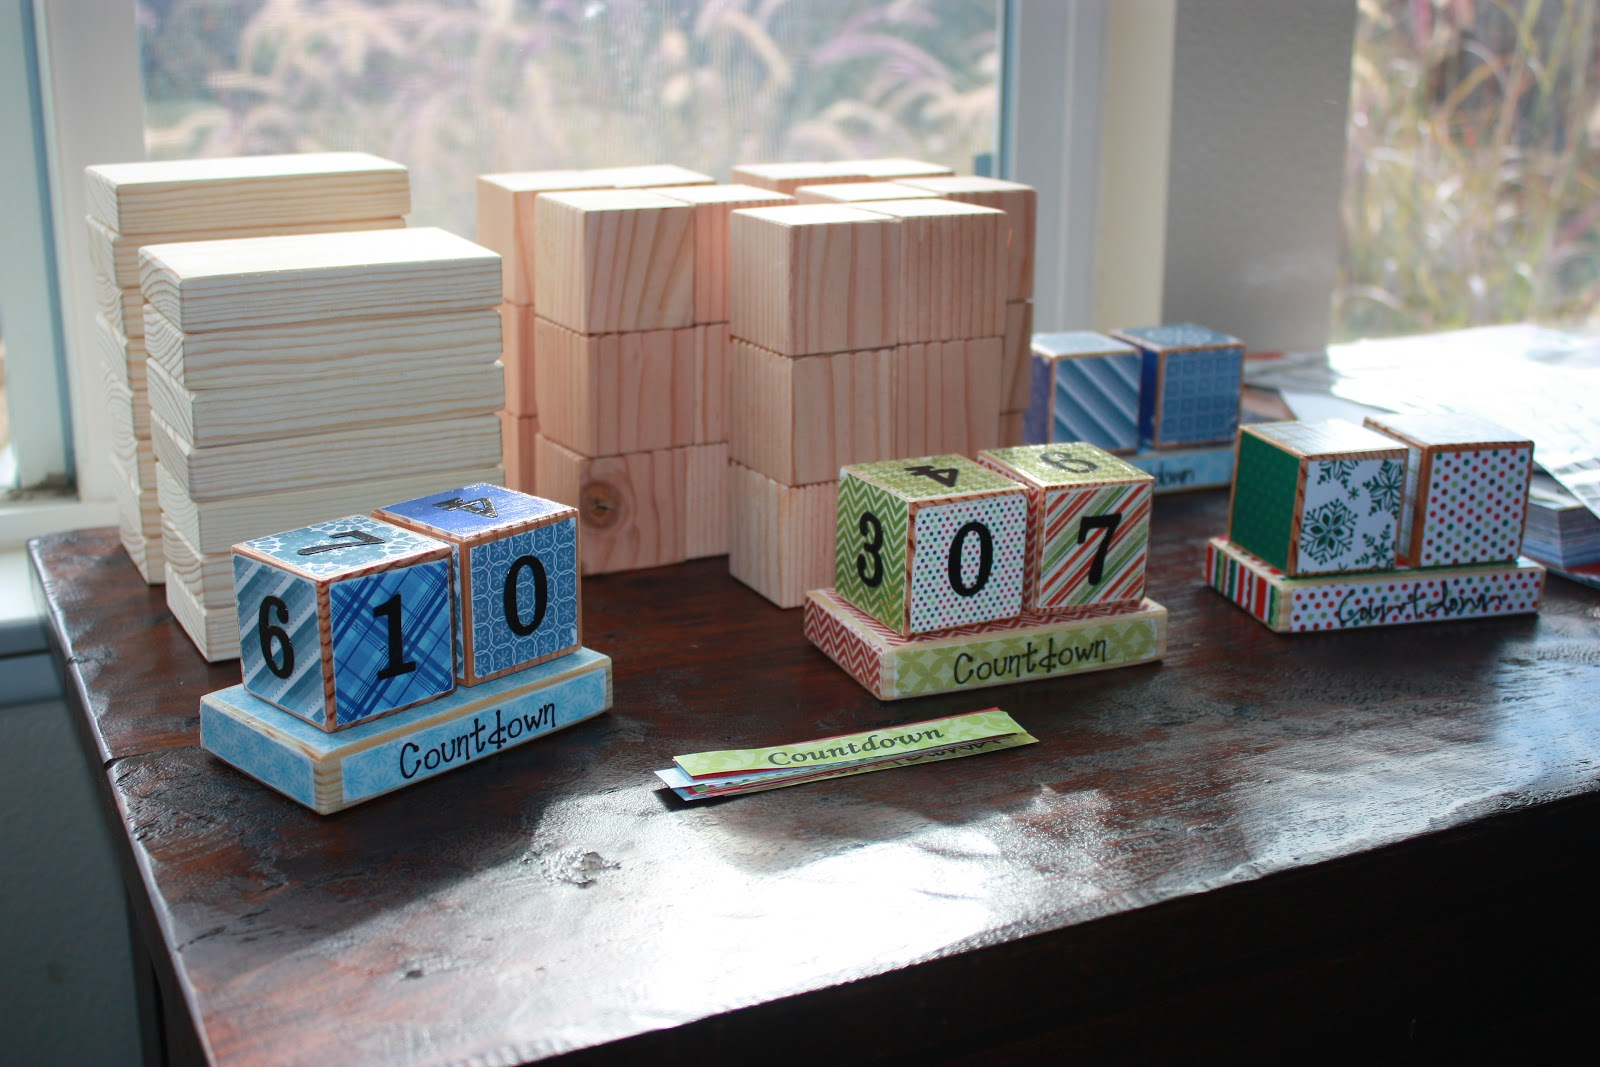 3 little things holiday pinterest party for Where to buy wood blocks for crafts